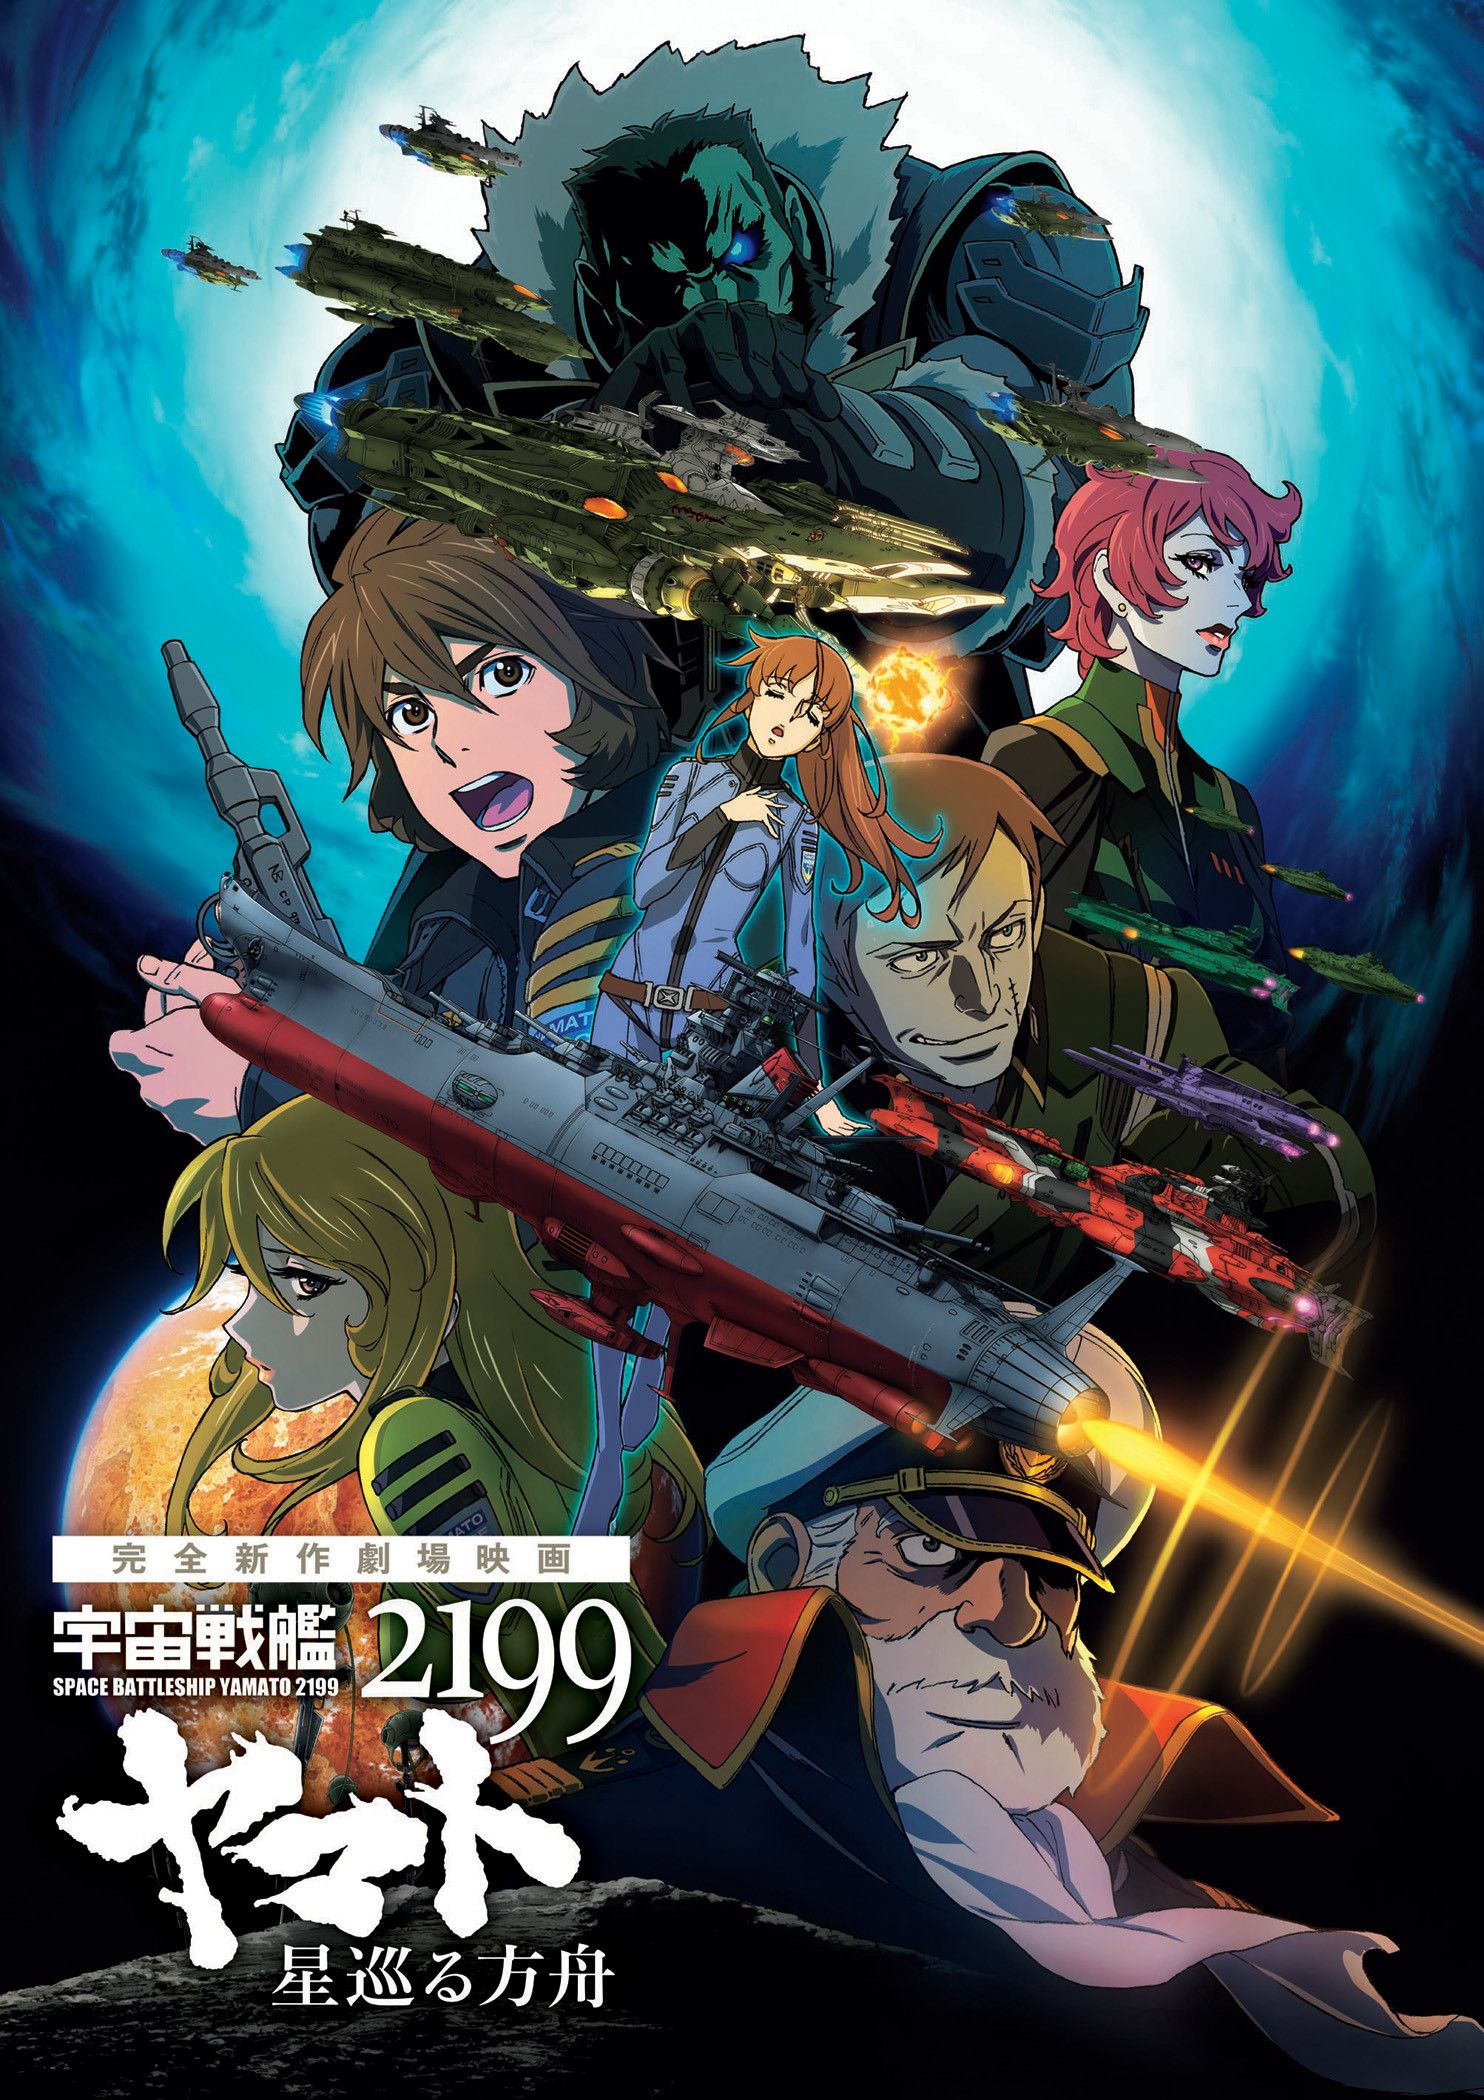 Space Battleship Yamato 2199 Wallpaper 86 Images Ciao Best